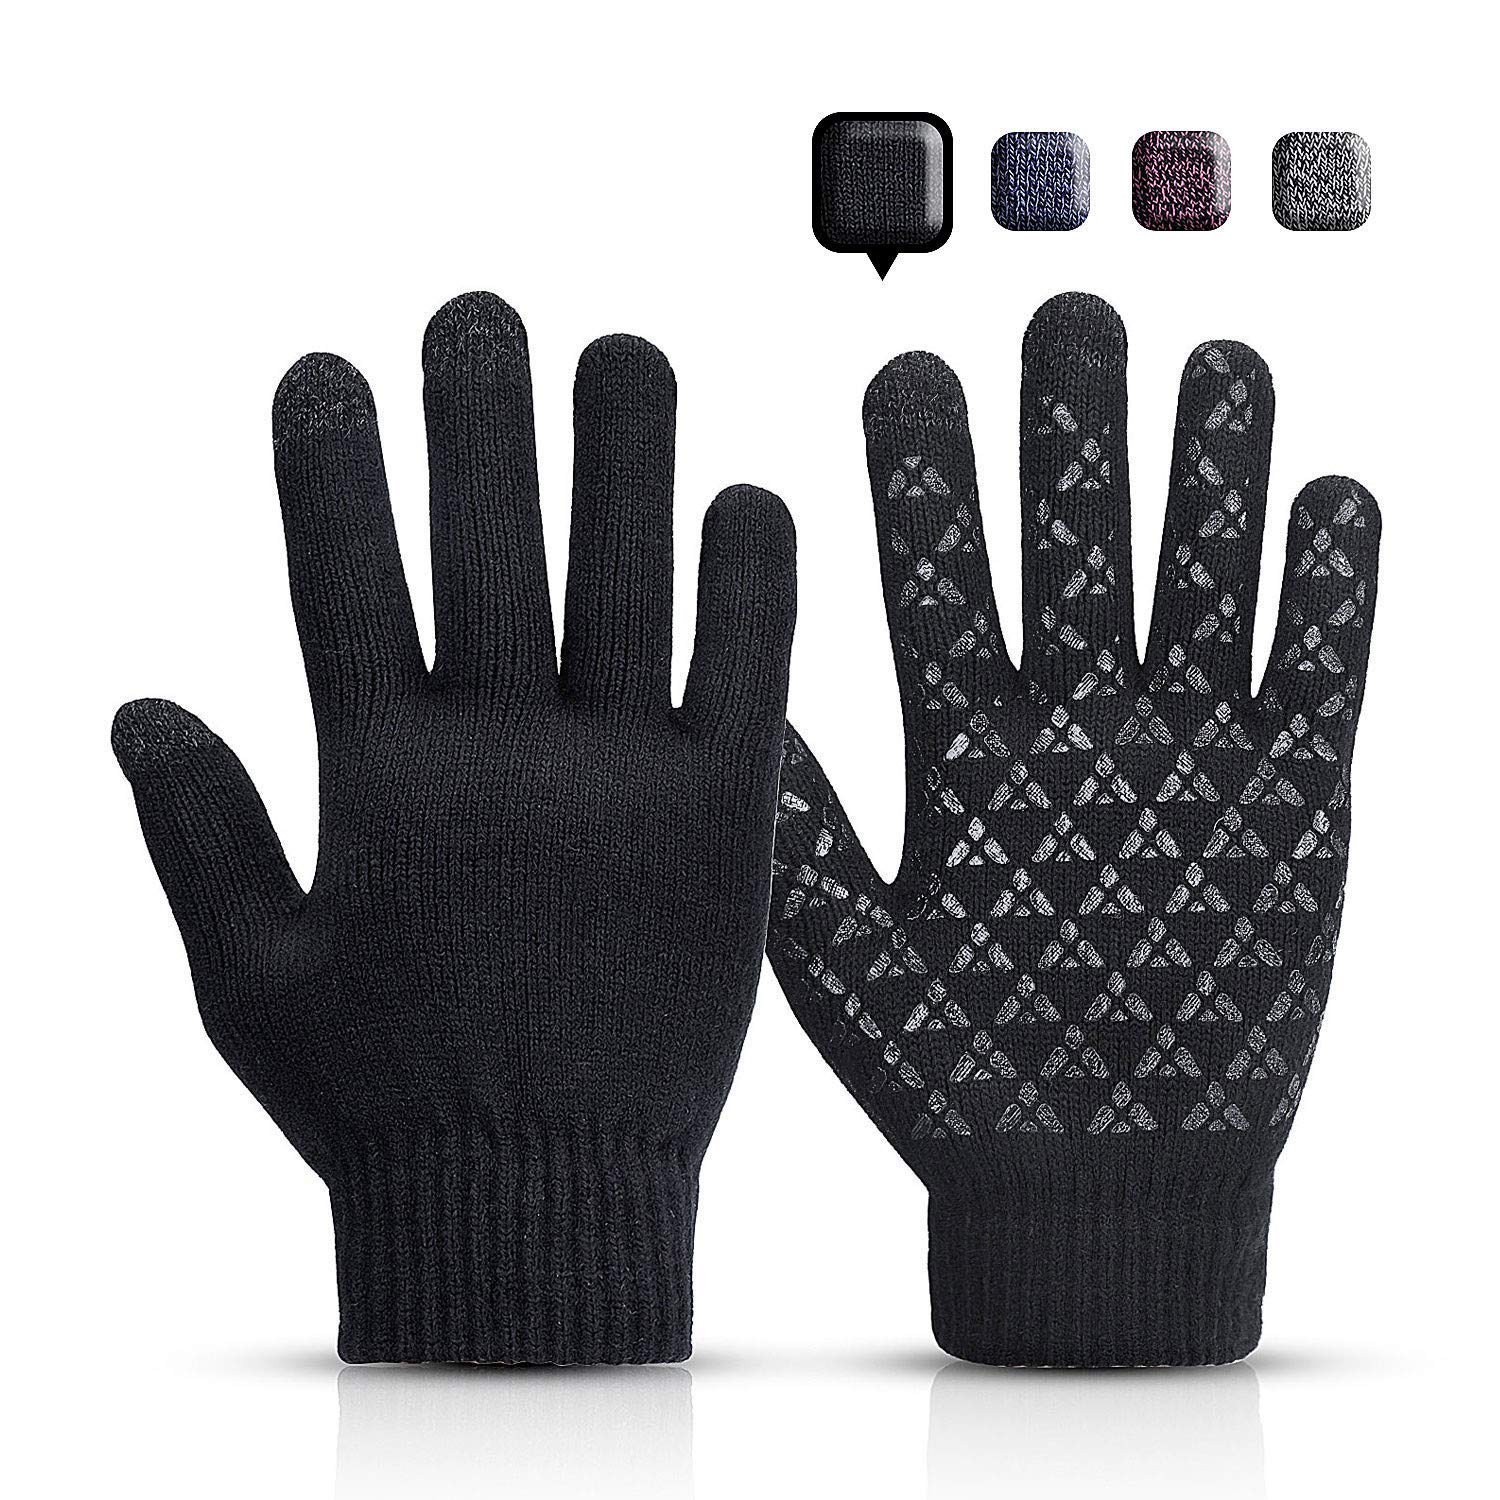 Rongli Stricken Touchscreen Winterhandschuhe